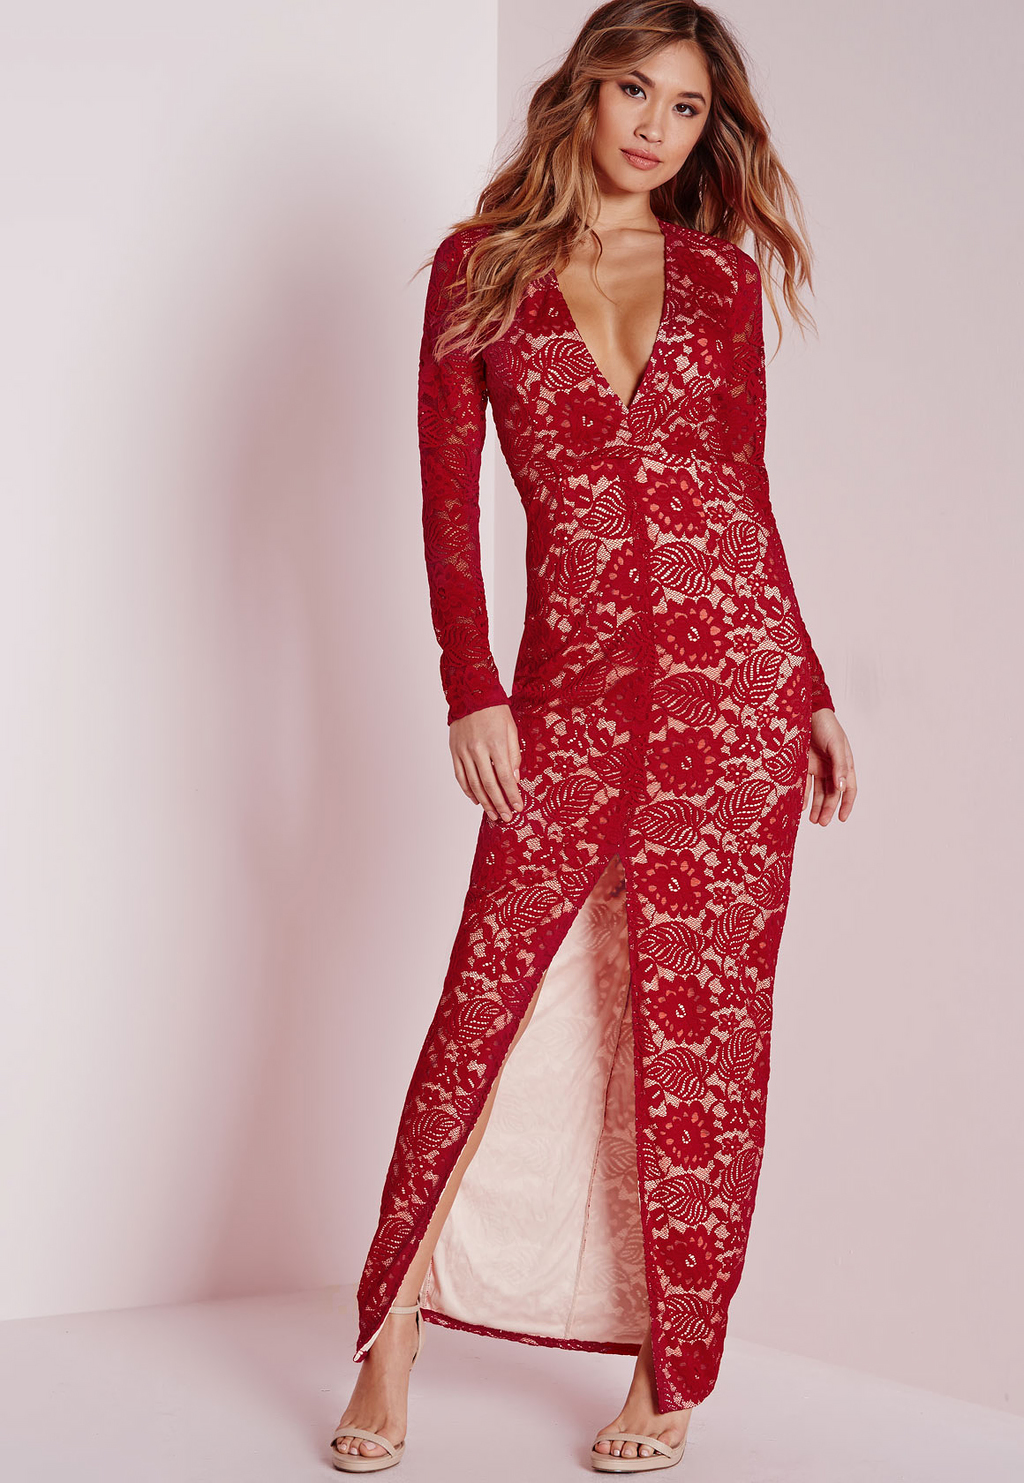 Lace Long Sleeve Maxi Dress Red, Red - neckline: plunge; pattern: plain; style: maxi dress; length: ankle length; predominant colour: true red; fit: body skimming; fibres: polyester/polyamide - stretch; occasions: occasion; sleeve length: long sleeve; sleeve style: standard; texture group: lace; season: a/w 2015; wardrobe: event